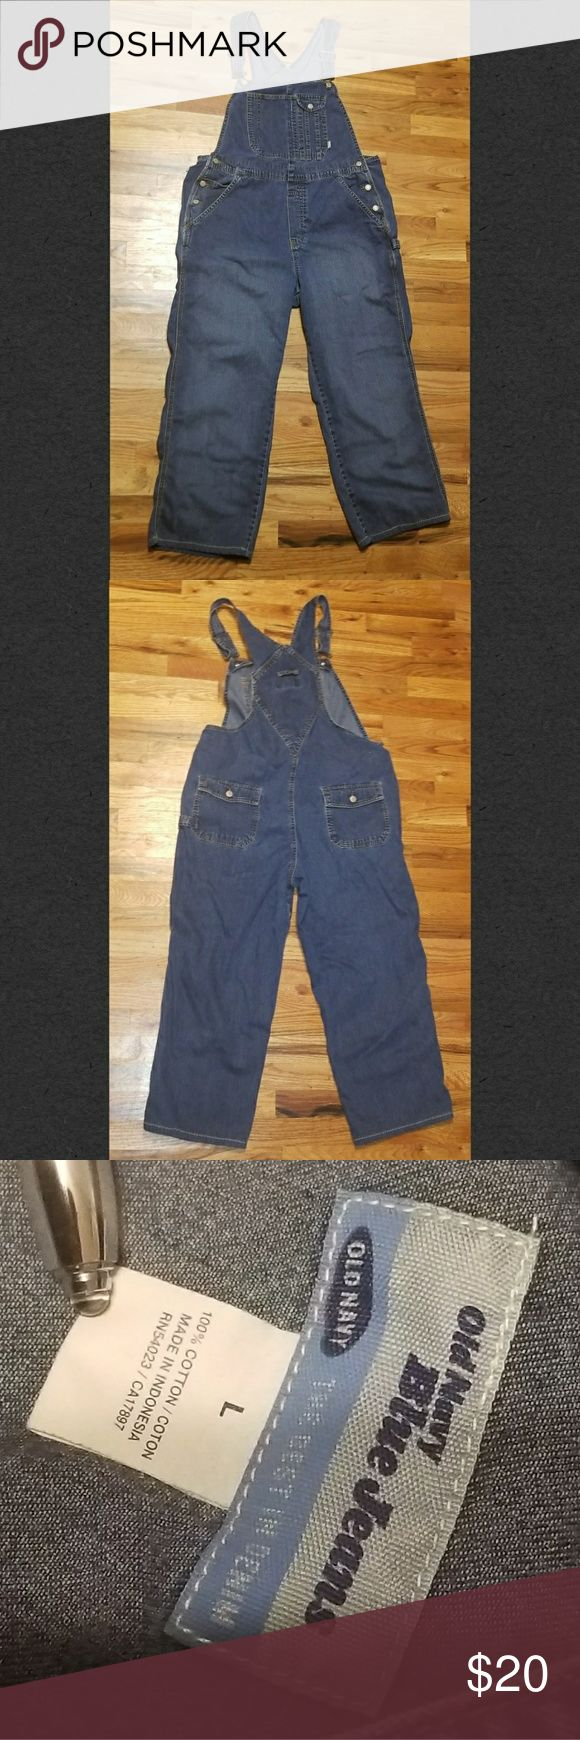 Old Navy Denim Overalls They're BACK!!! Old Navy Denim Overalls, size Large. Cut them off, roll them up, distress them, or wear them as they are! Ready for your creative mind!!! Old Navy Jeans Overalls